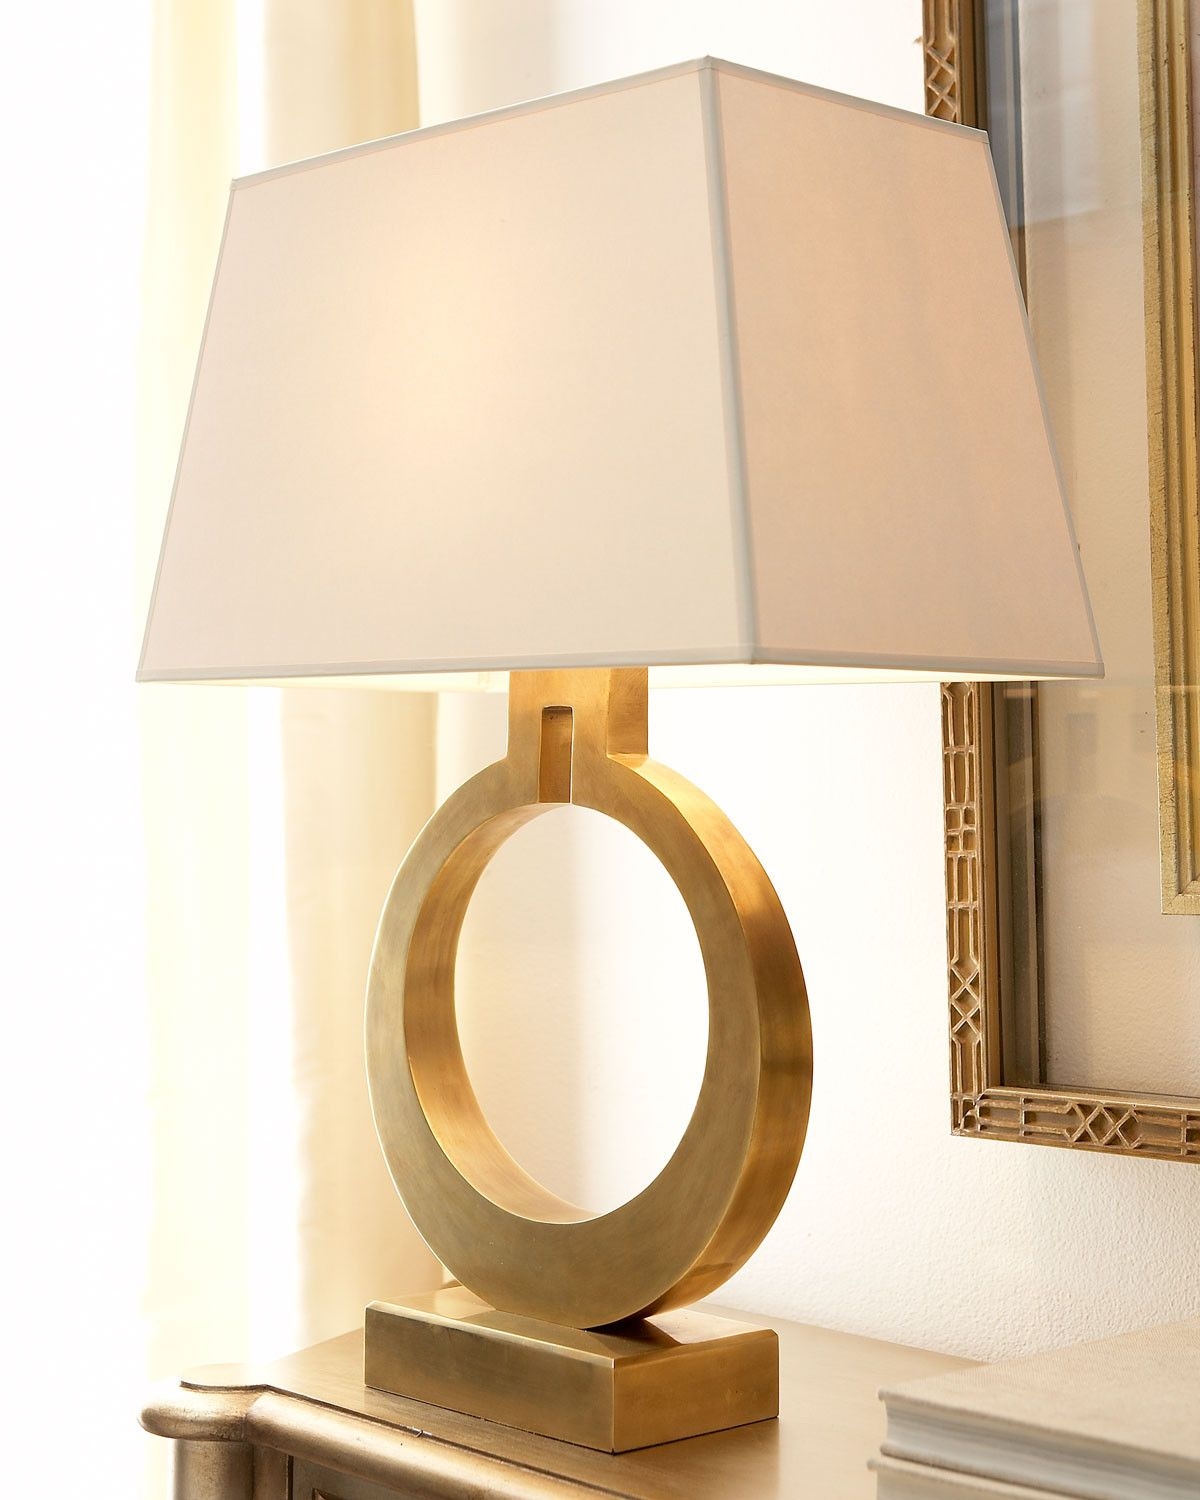 Brass Ring Table Lamp Traditional Lamp Shades Table Lamps For